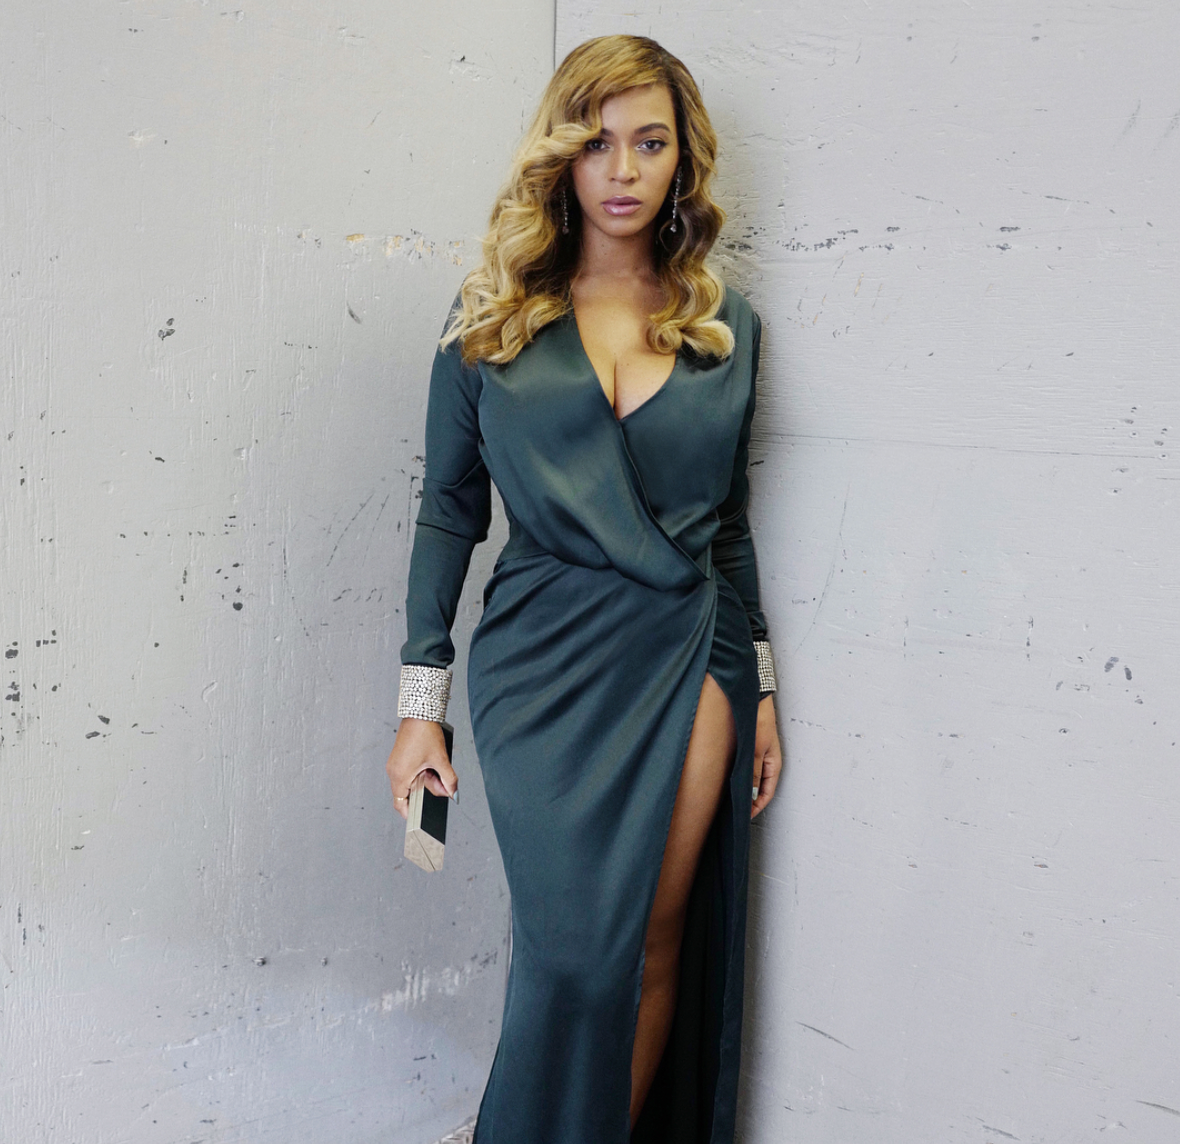 Beyoncé Wore a $165 Dress to Rihanna's 3rd Annual Diamond Ball